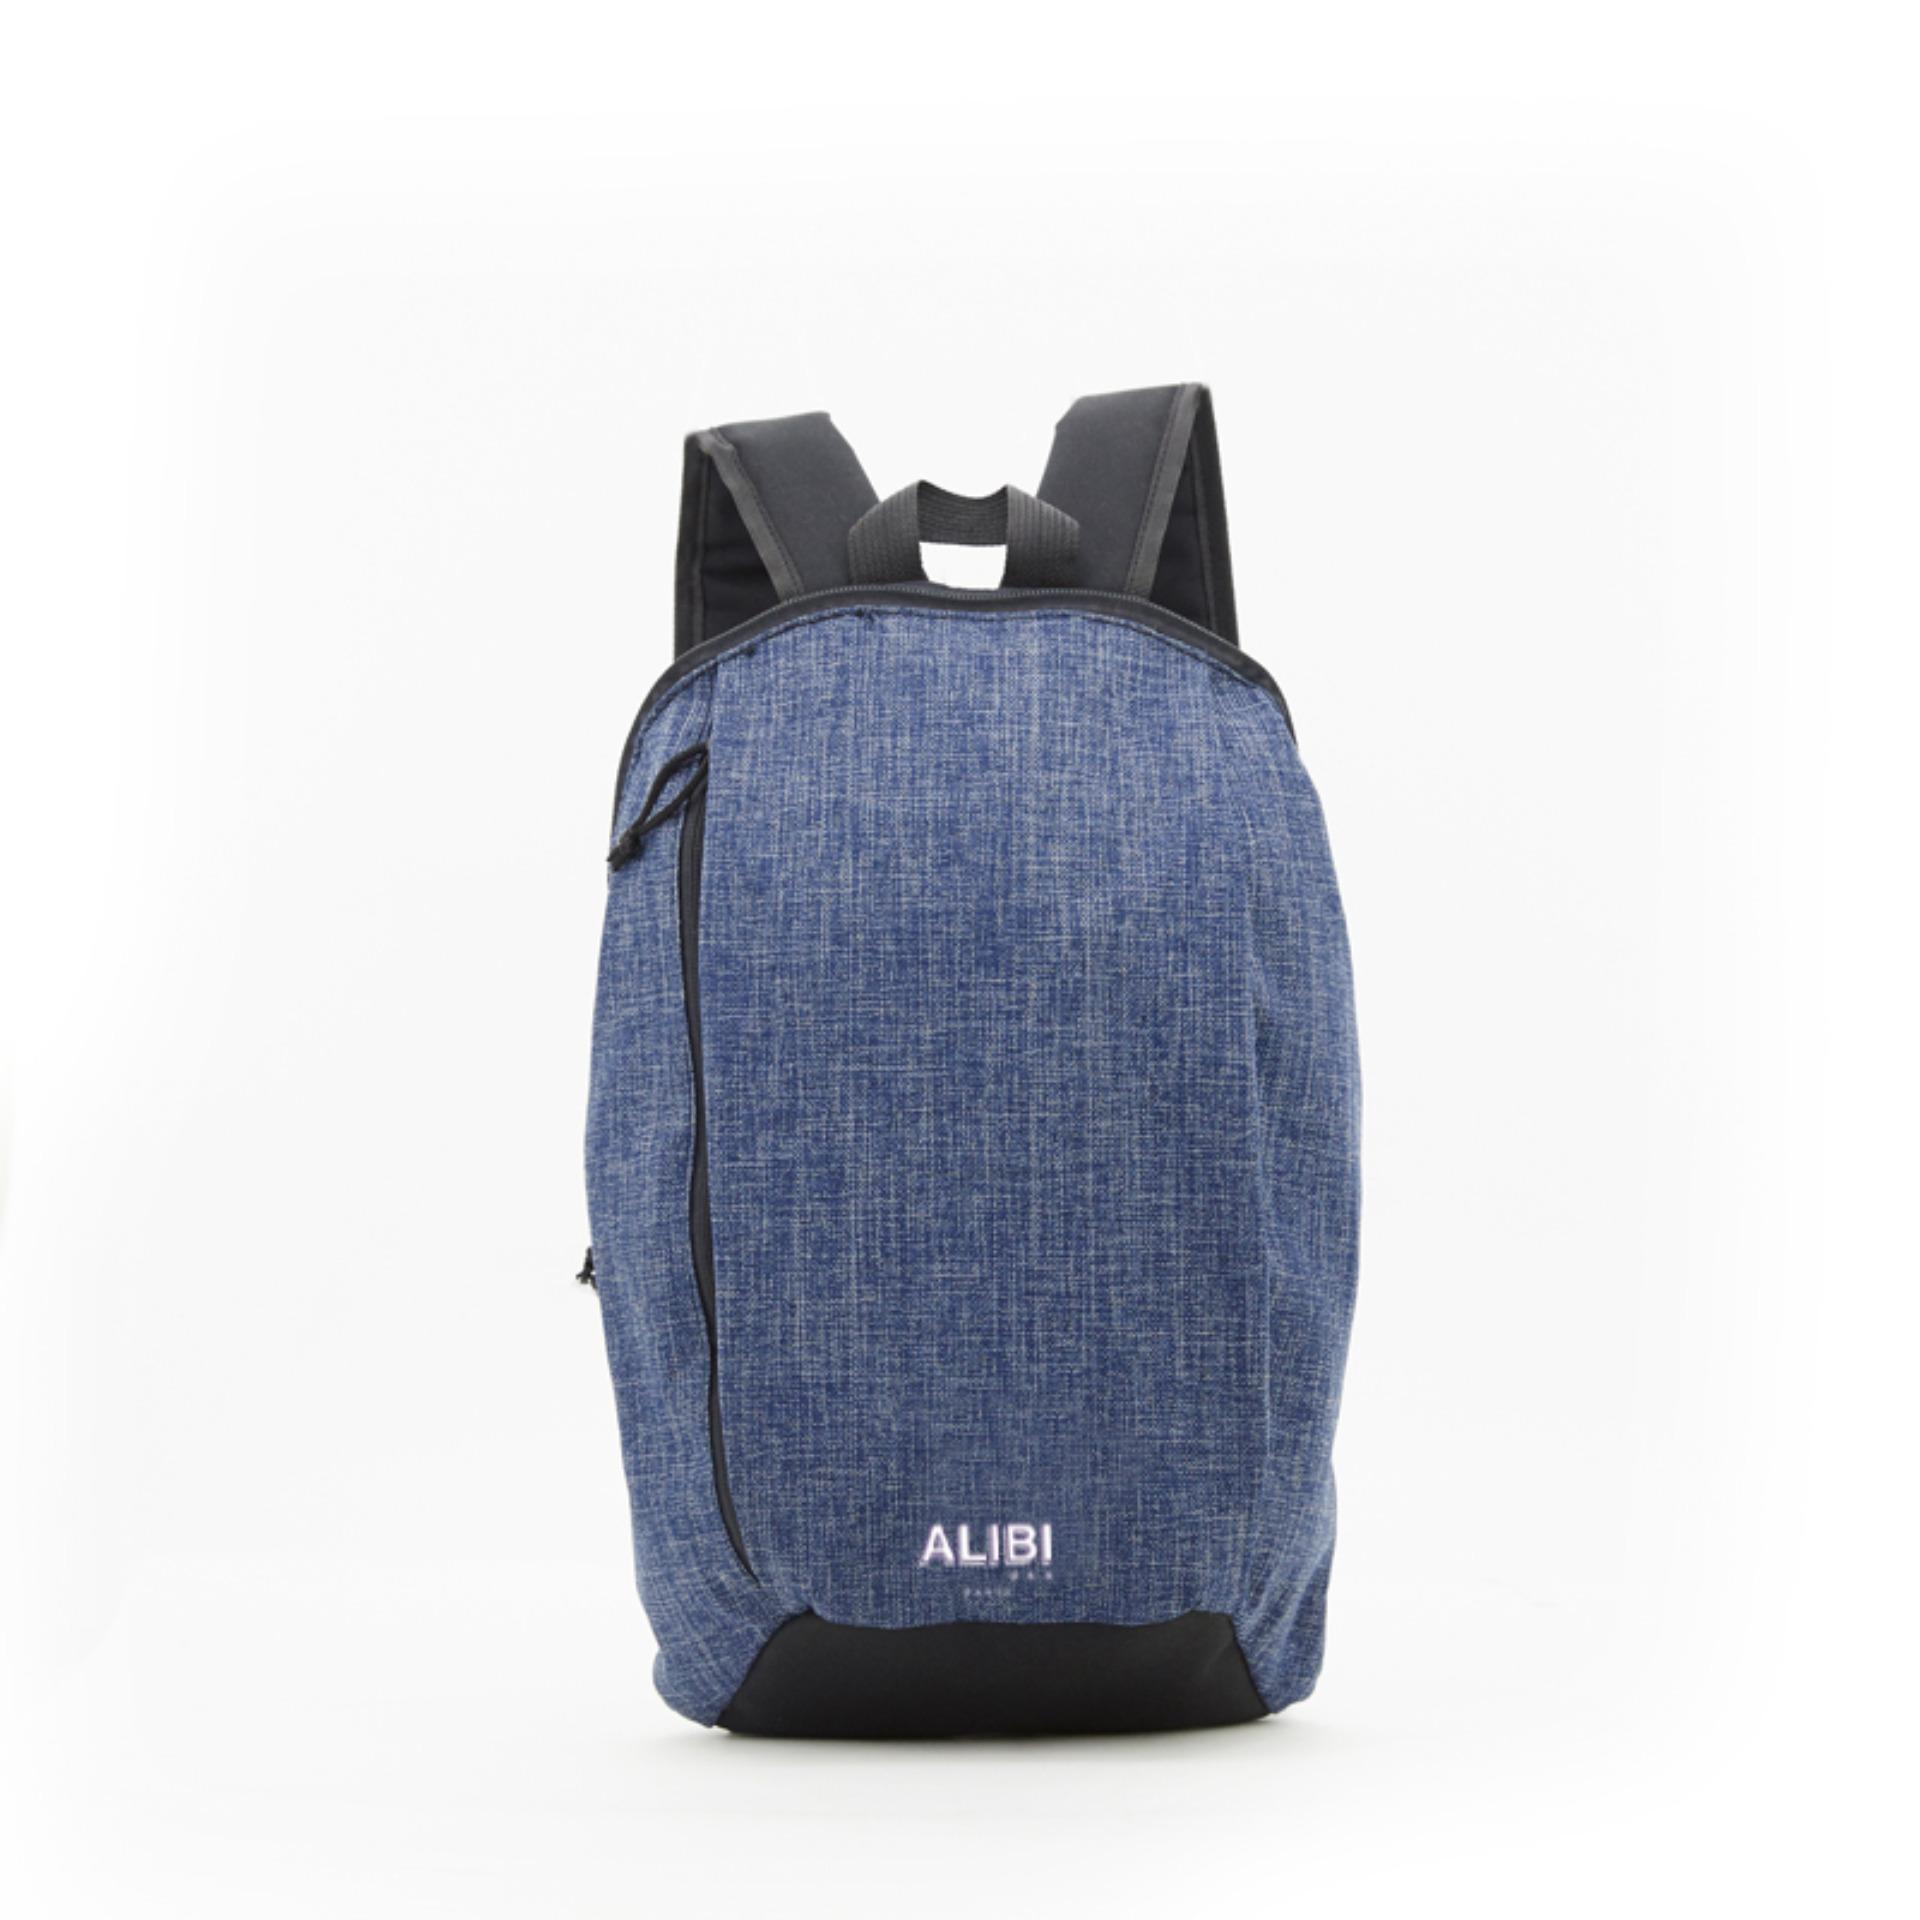 Beli Alibi Paris Alston Bag Baru